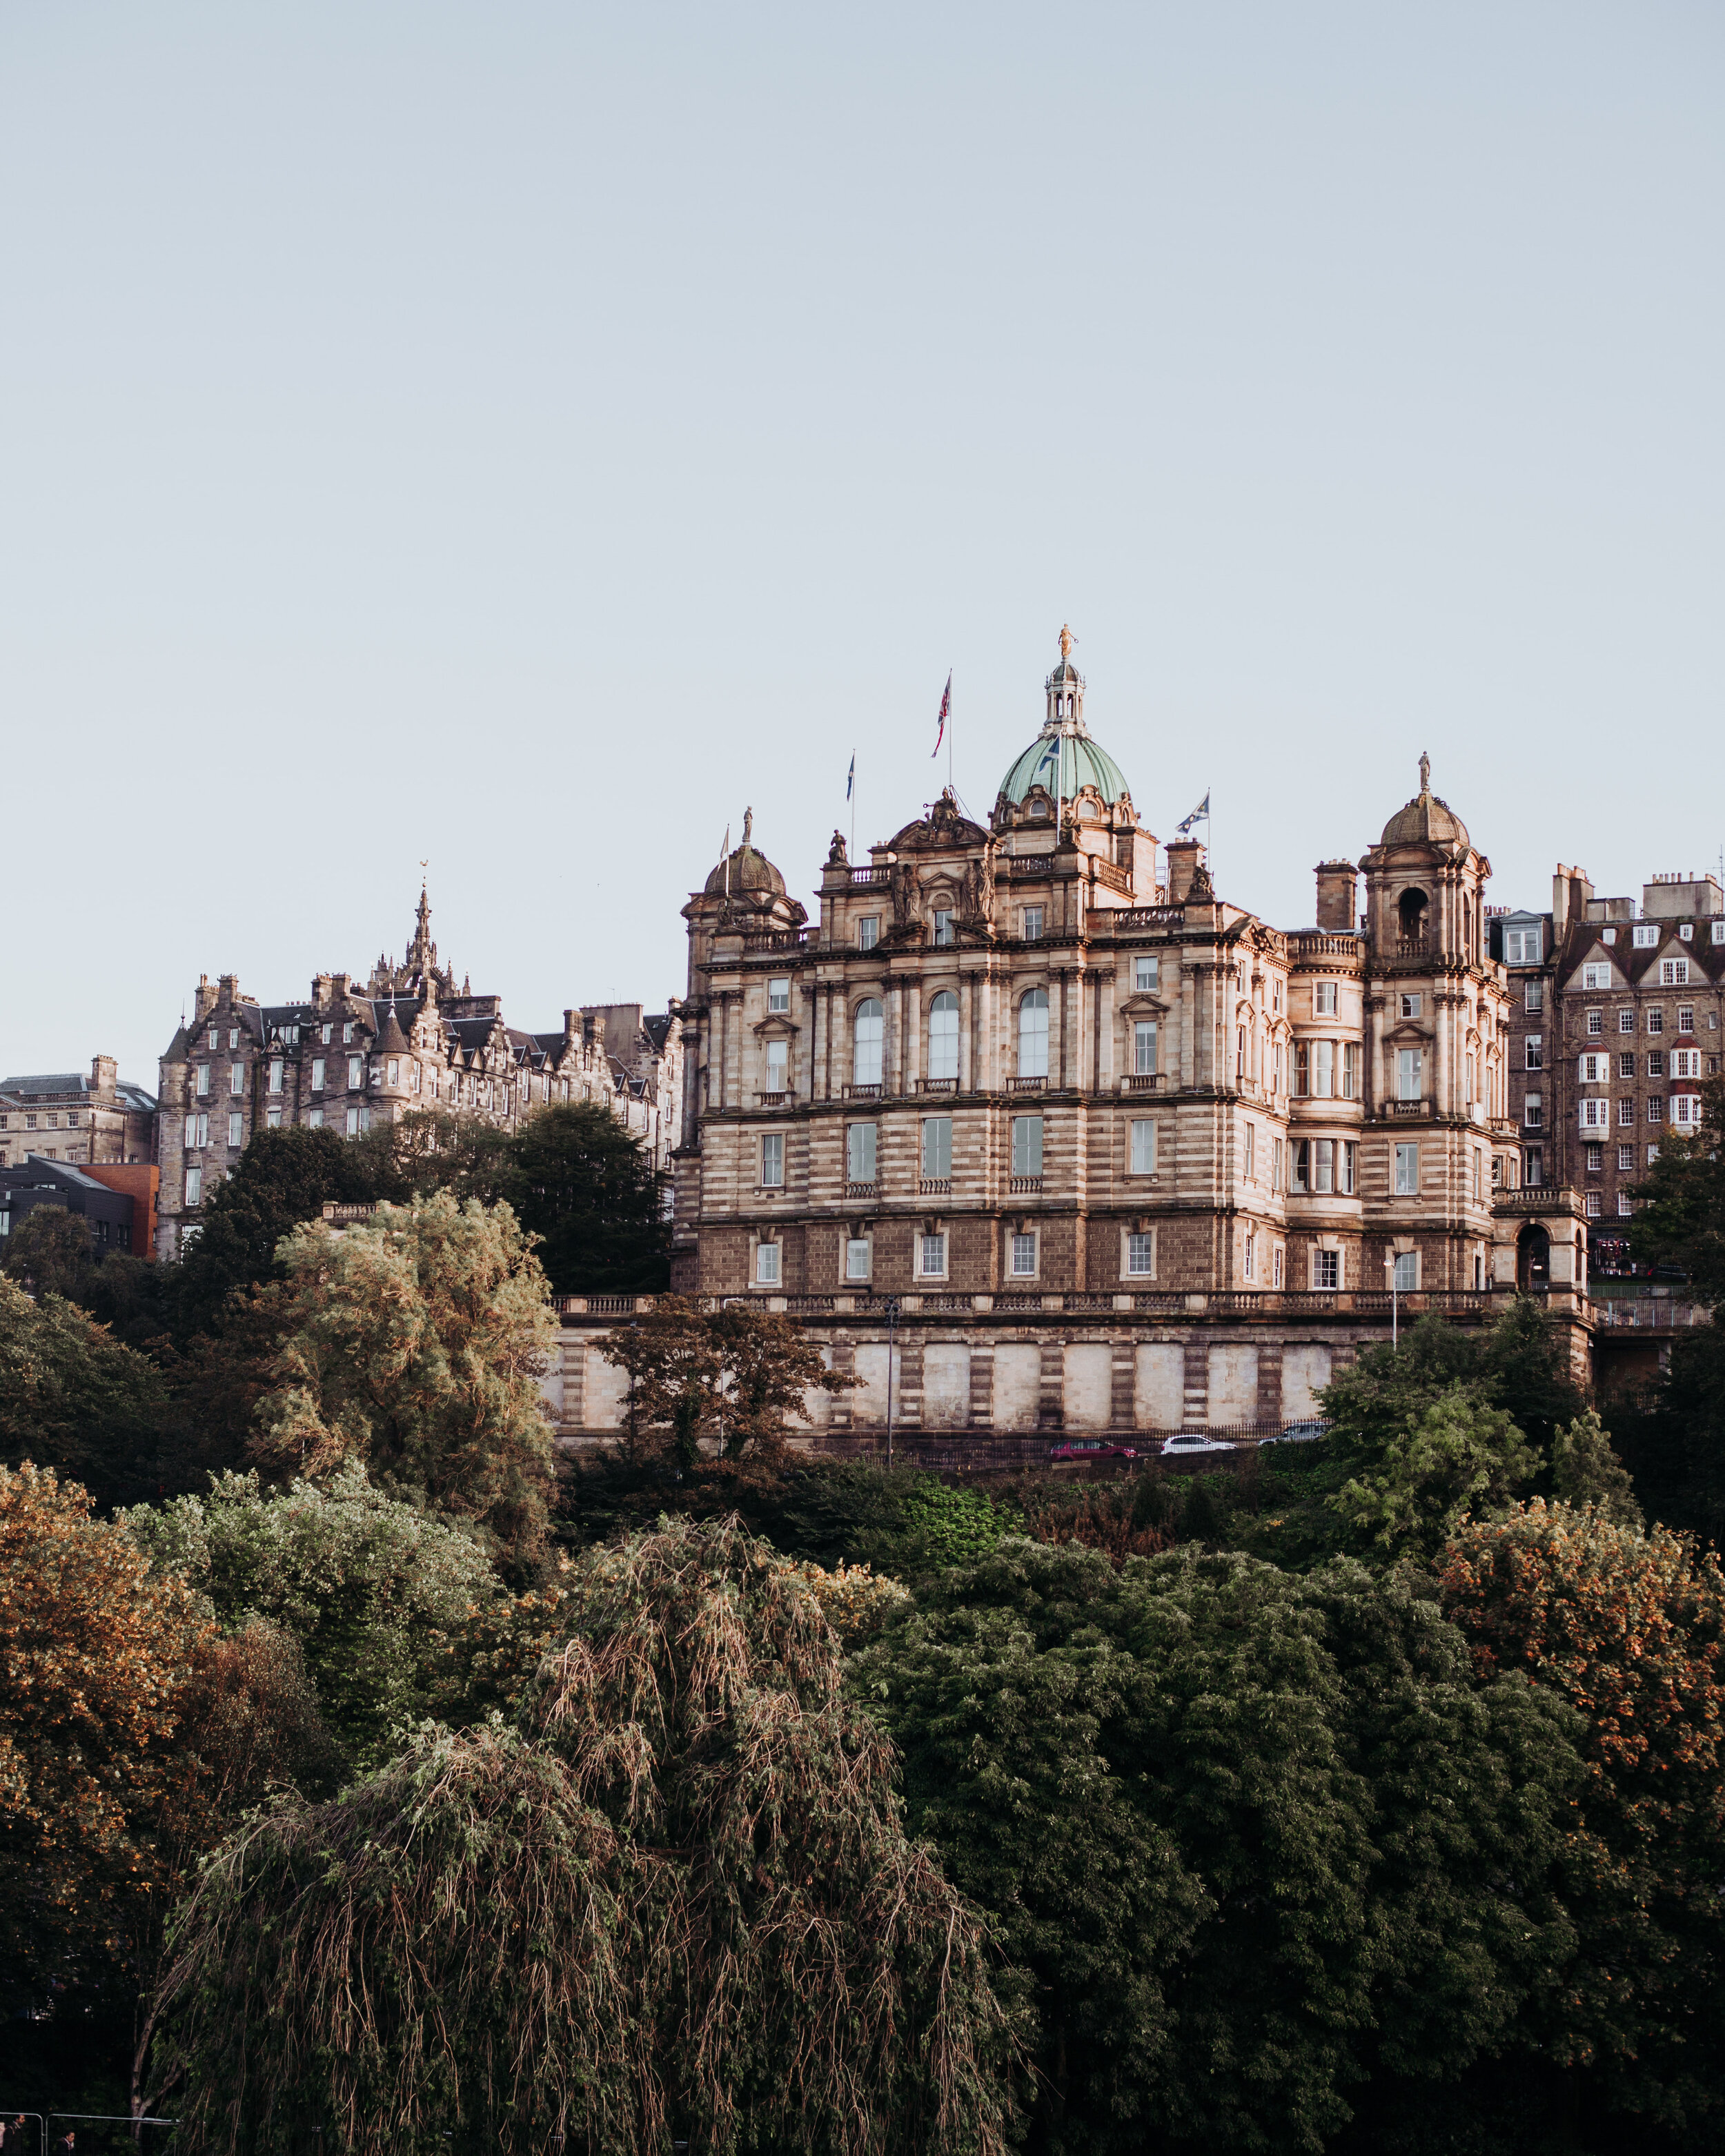 The building to the left is our hotel. Taken from Princes Street! / Photo: Emilia Wallin